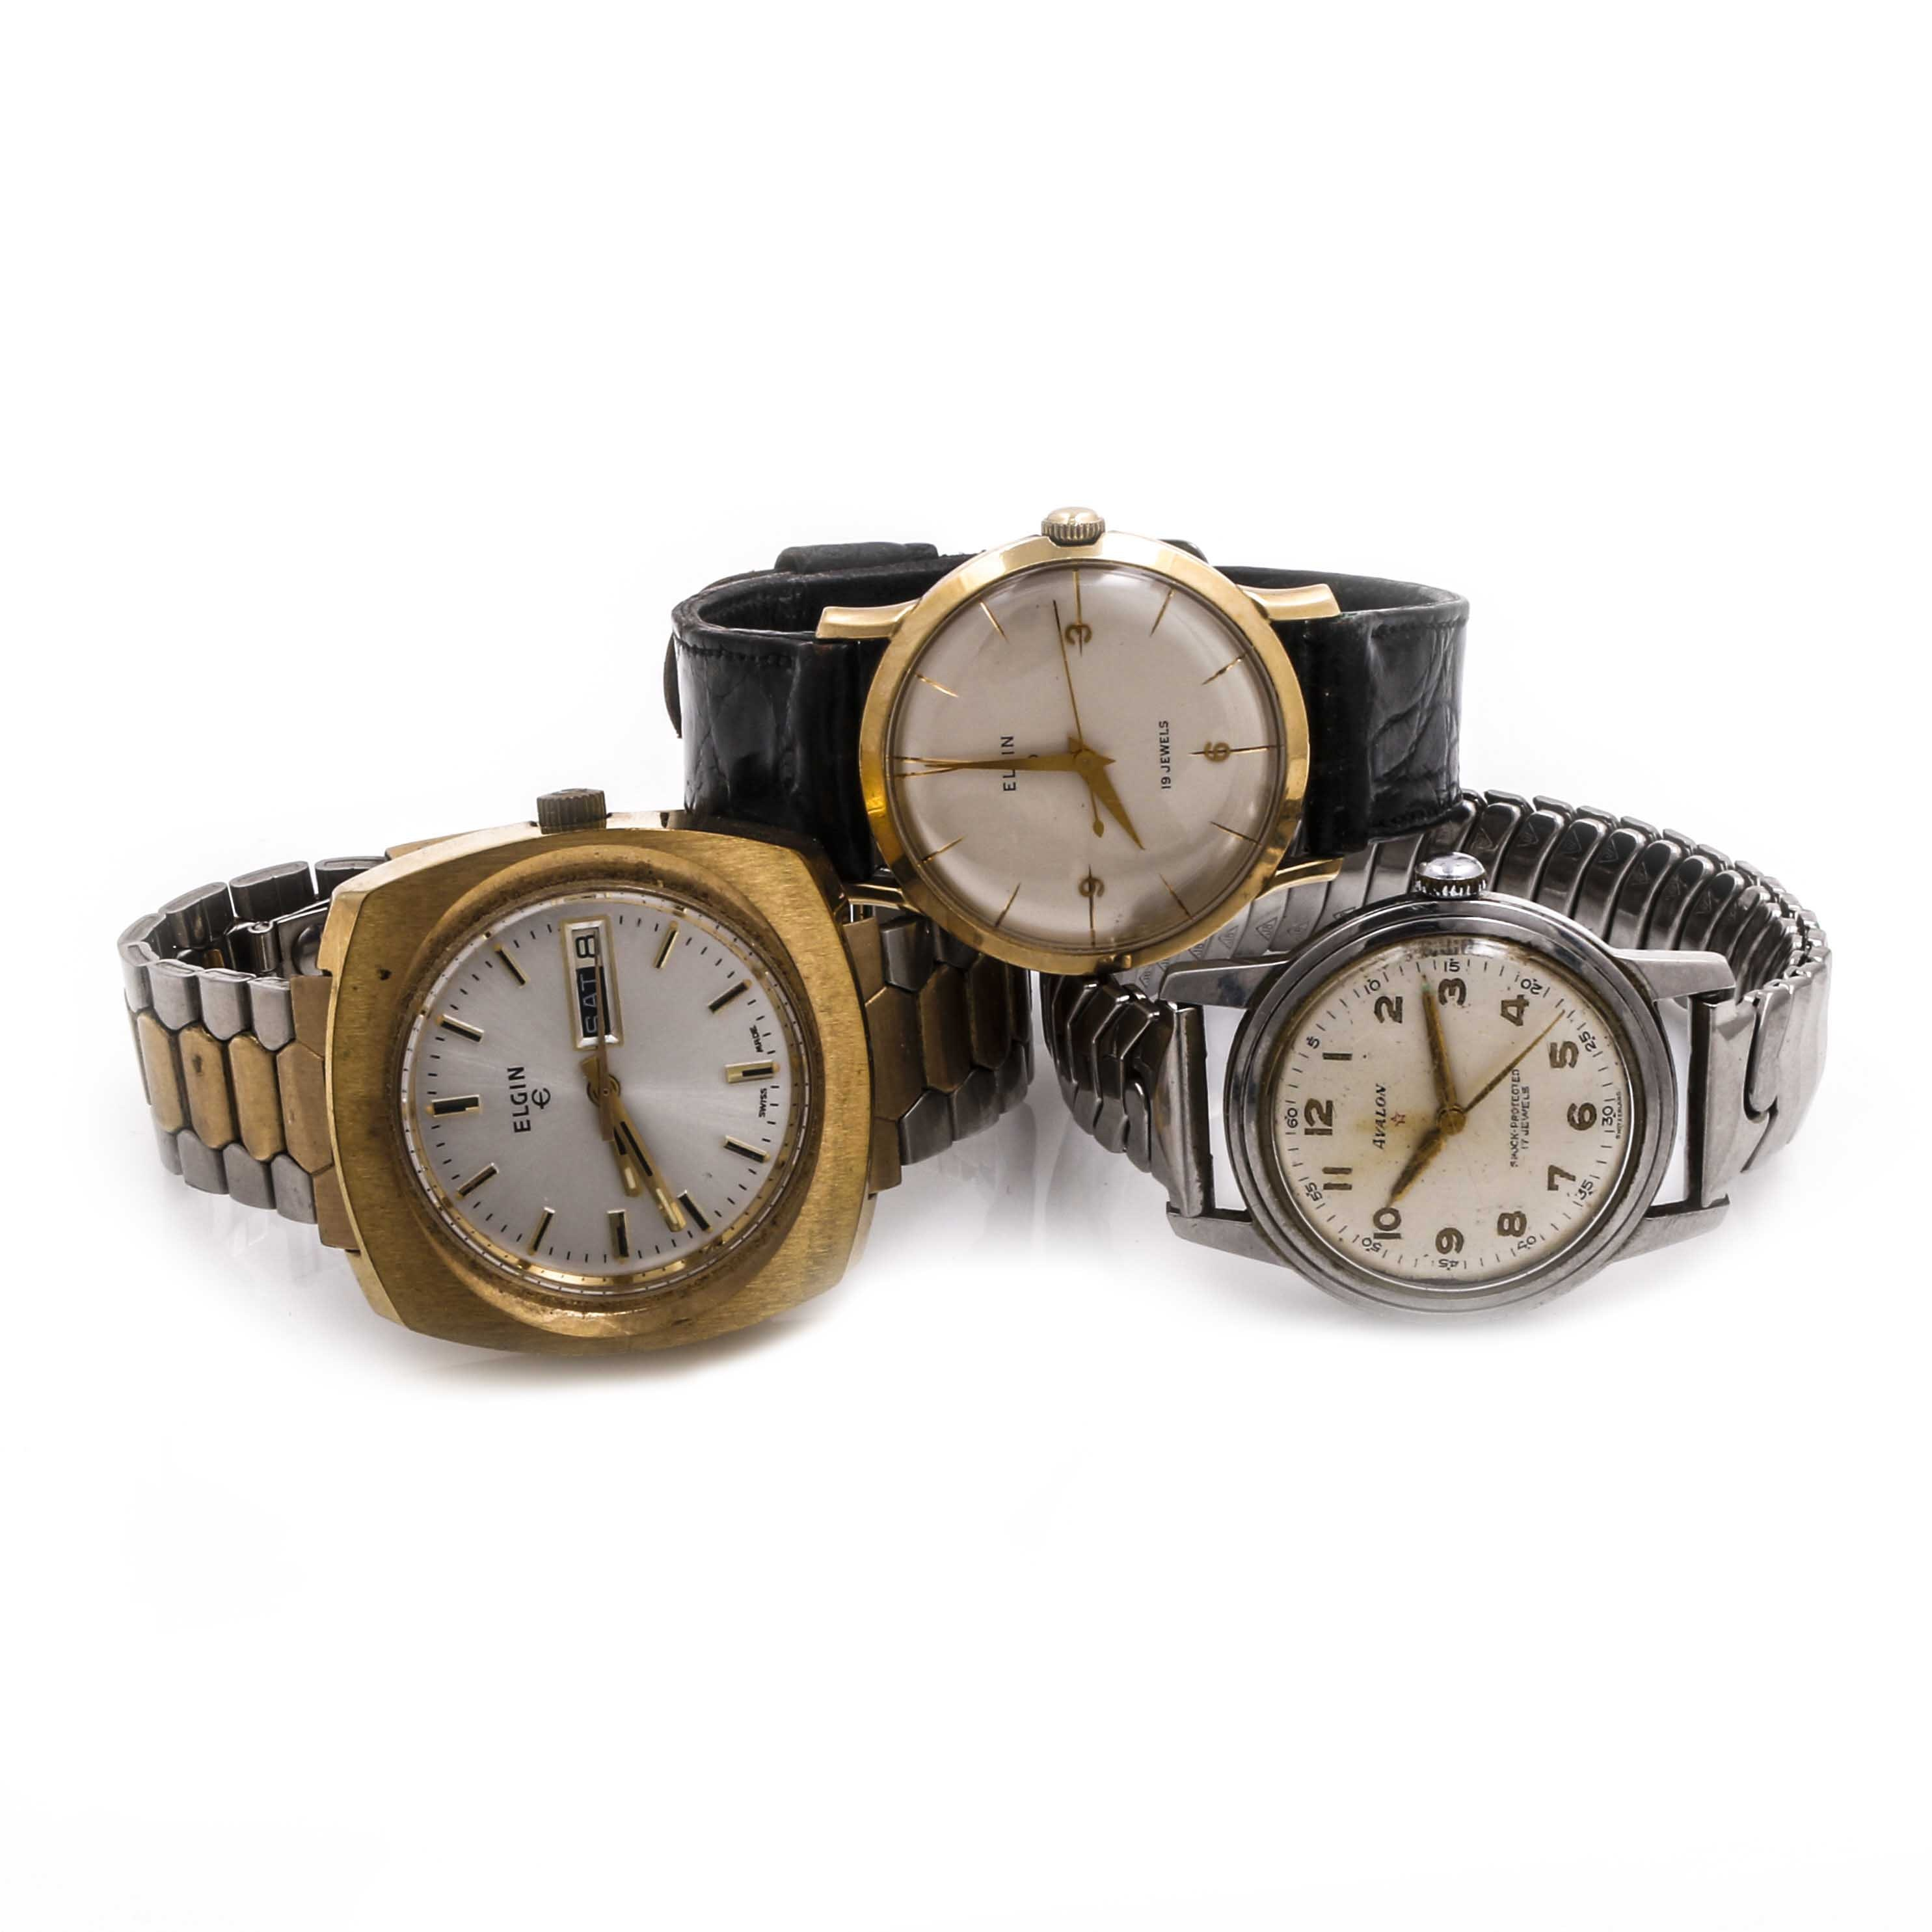 Silver and Gold Tone Elgin and Avalon Wristwatches